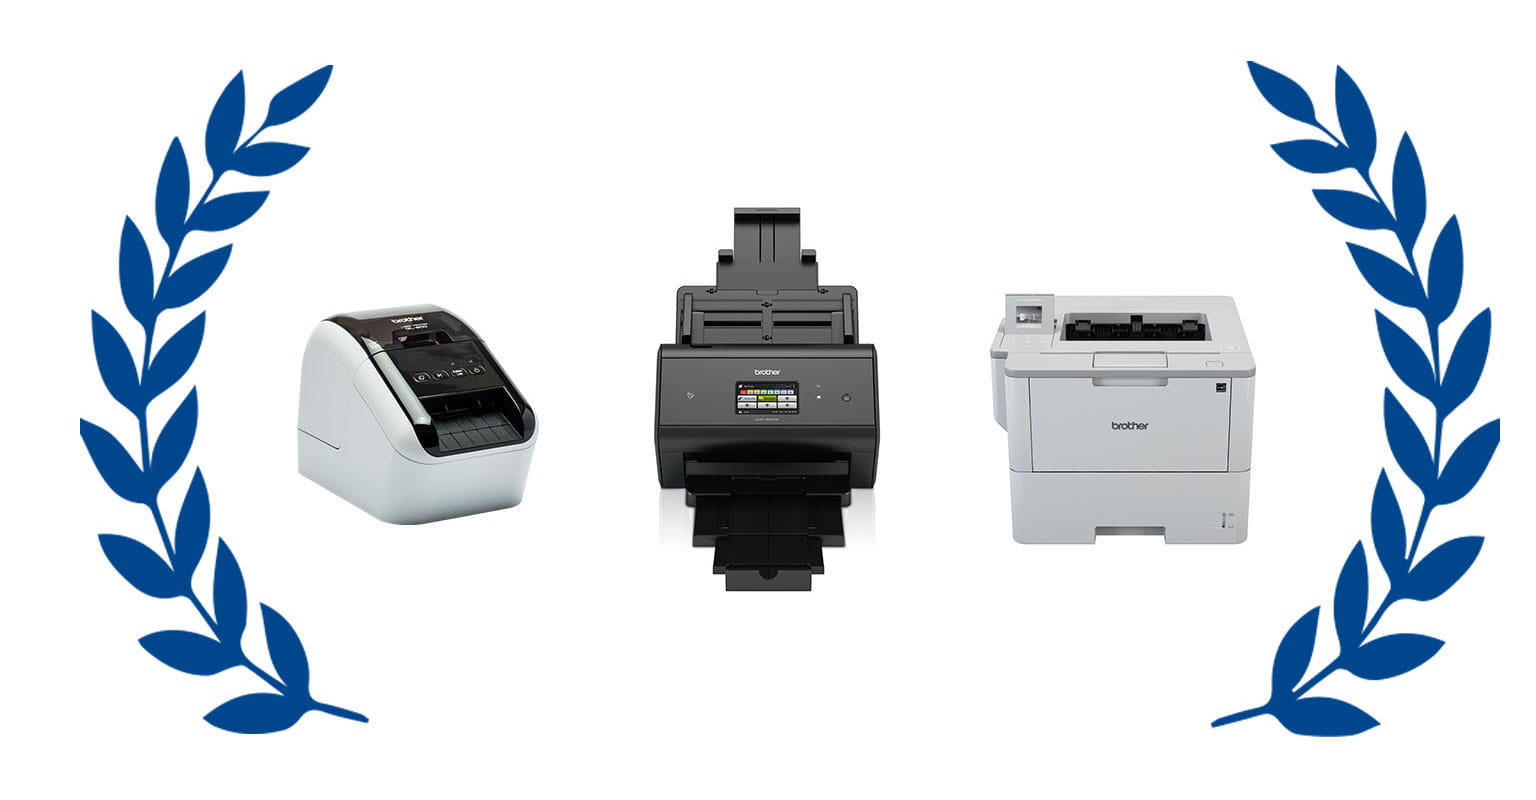 Label printer, document scanner and desktop printer within an award wreath